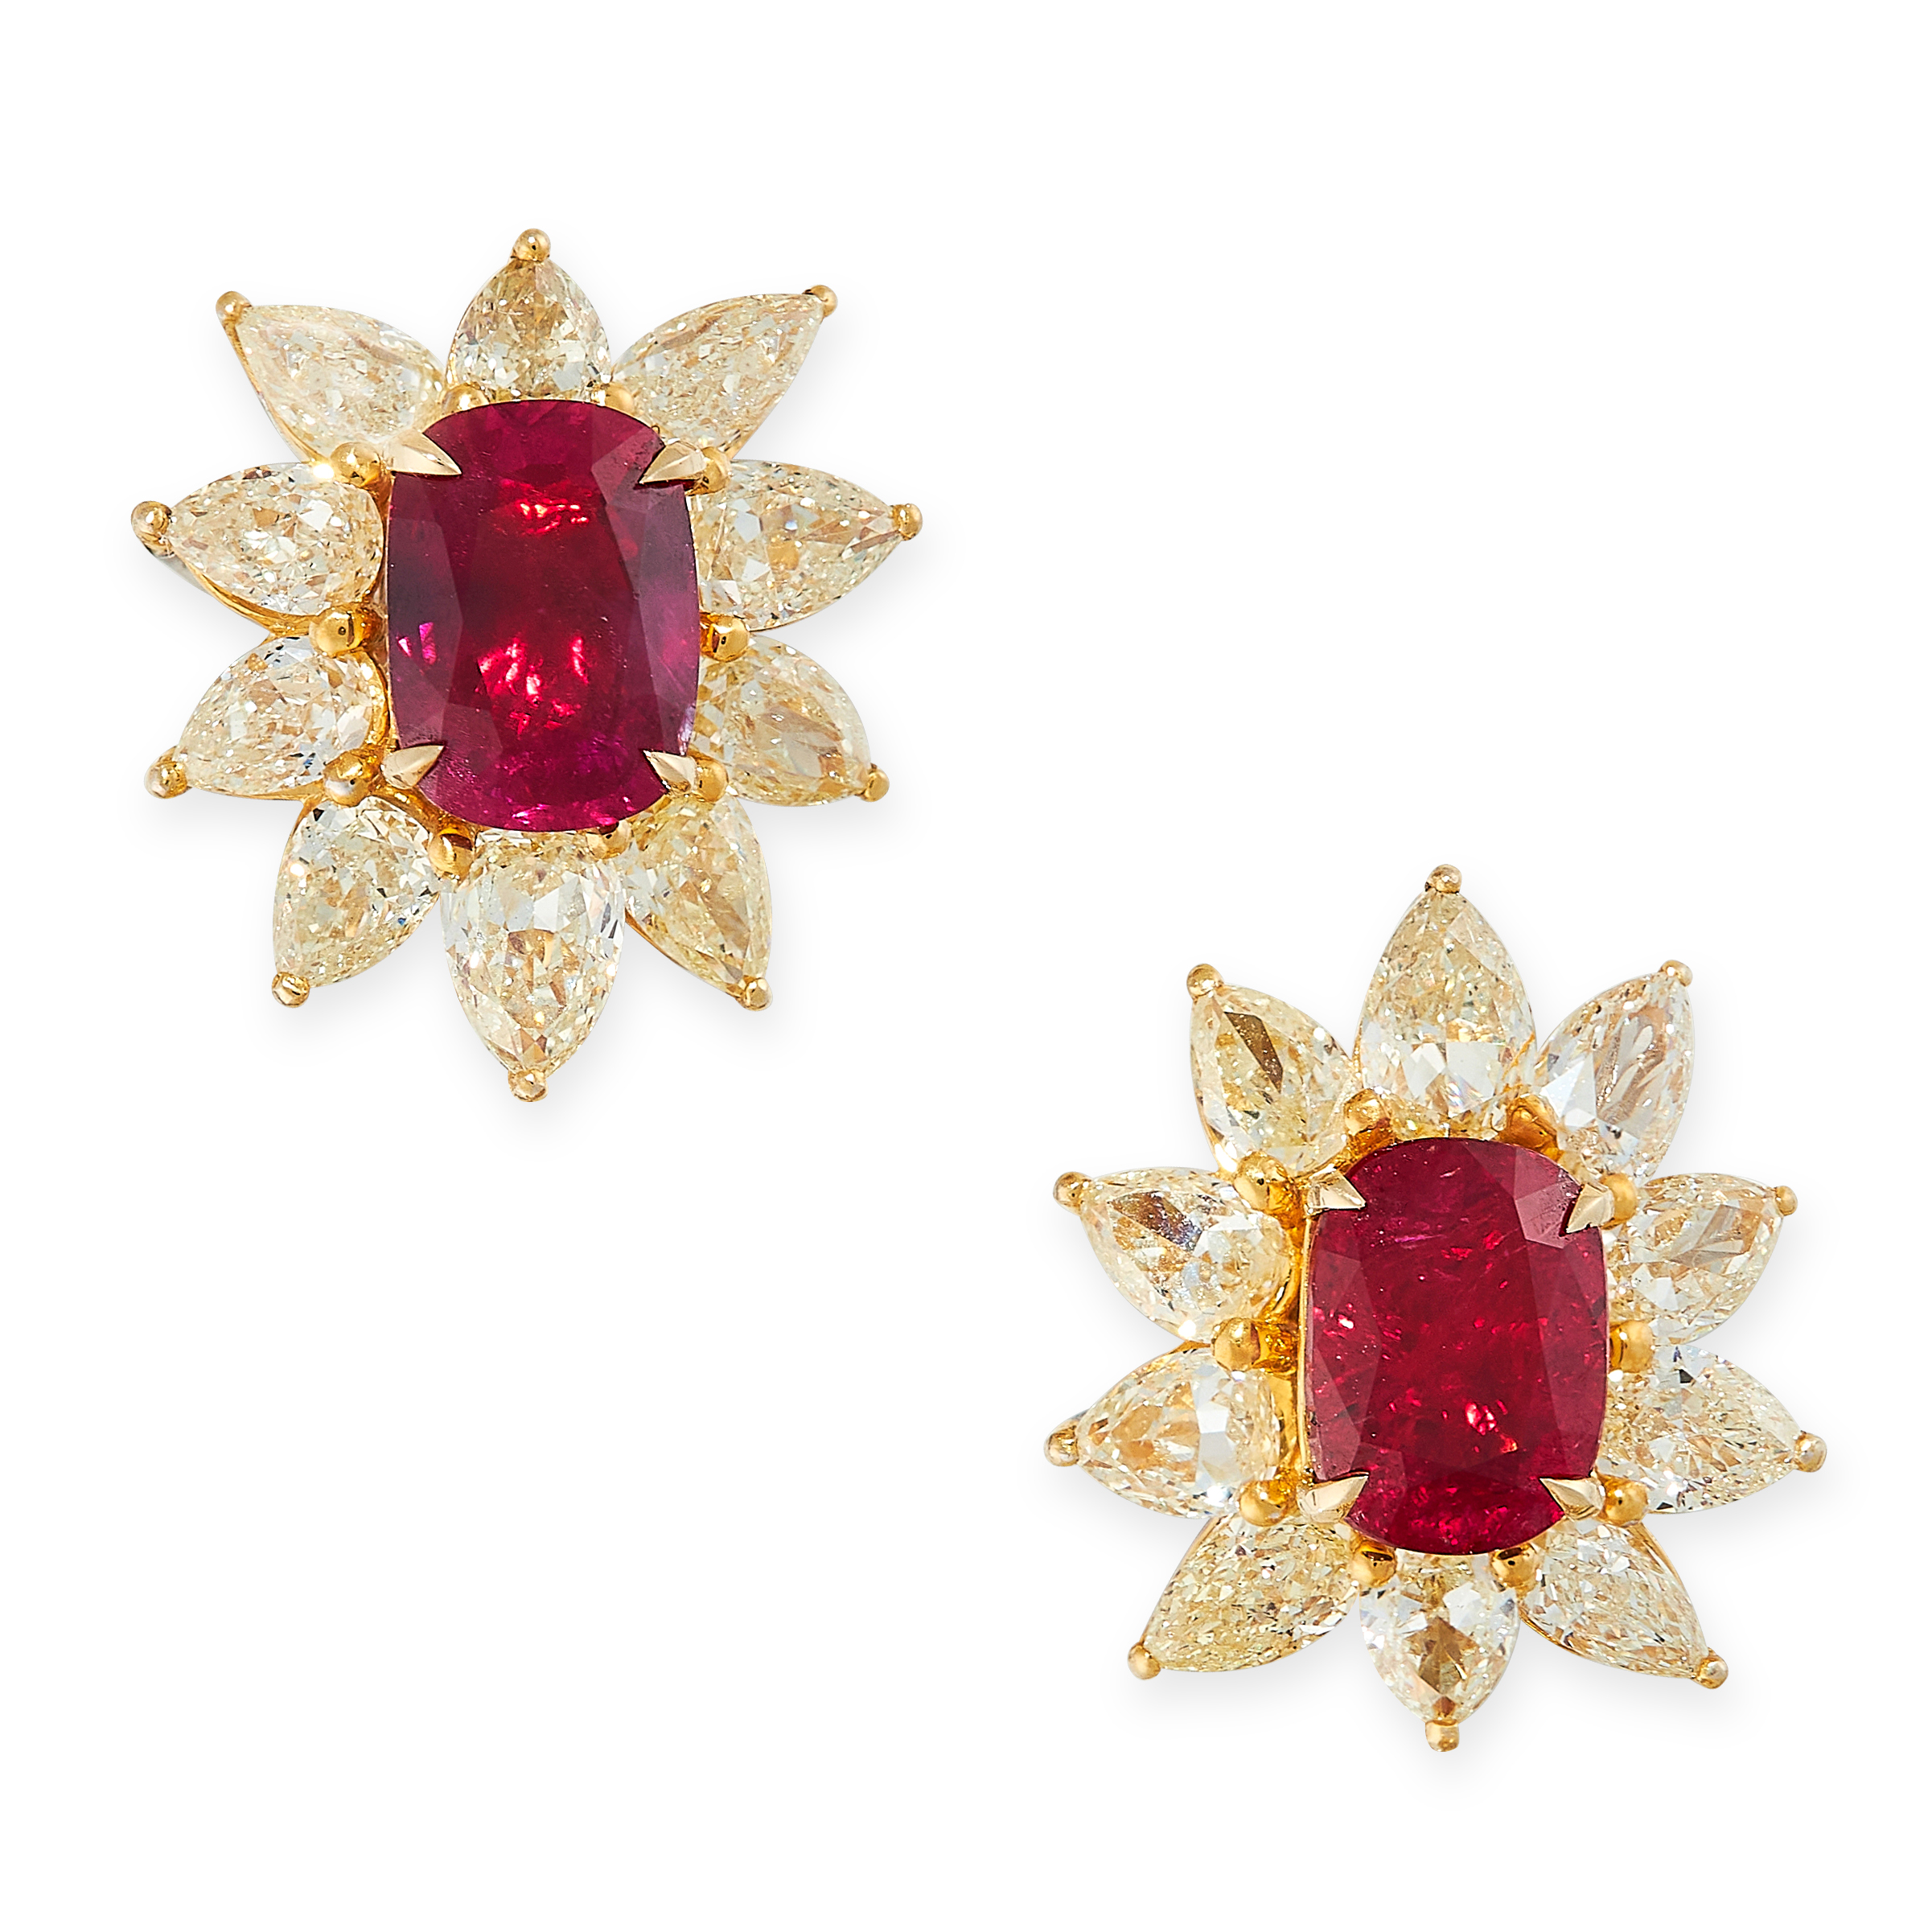 PAIR OF UNHEATED RUBY AND DIAMOND EARRINGS each set with a cushion cut ruby of 1.50 carats, - Image 2 of 2